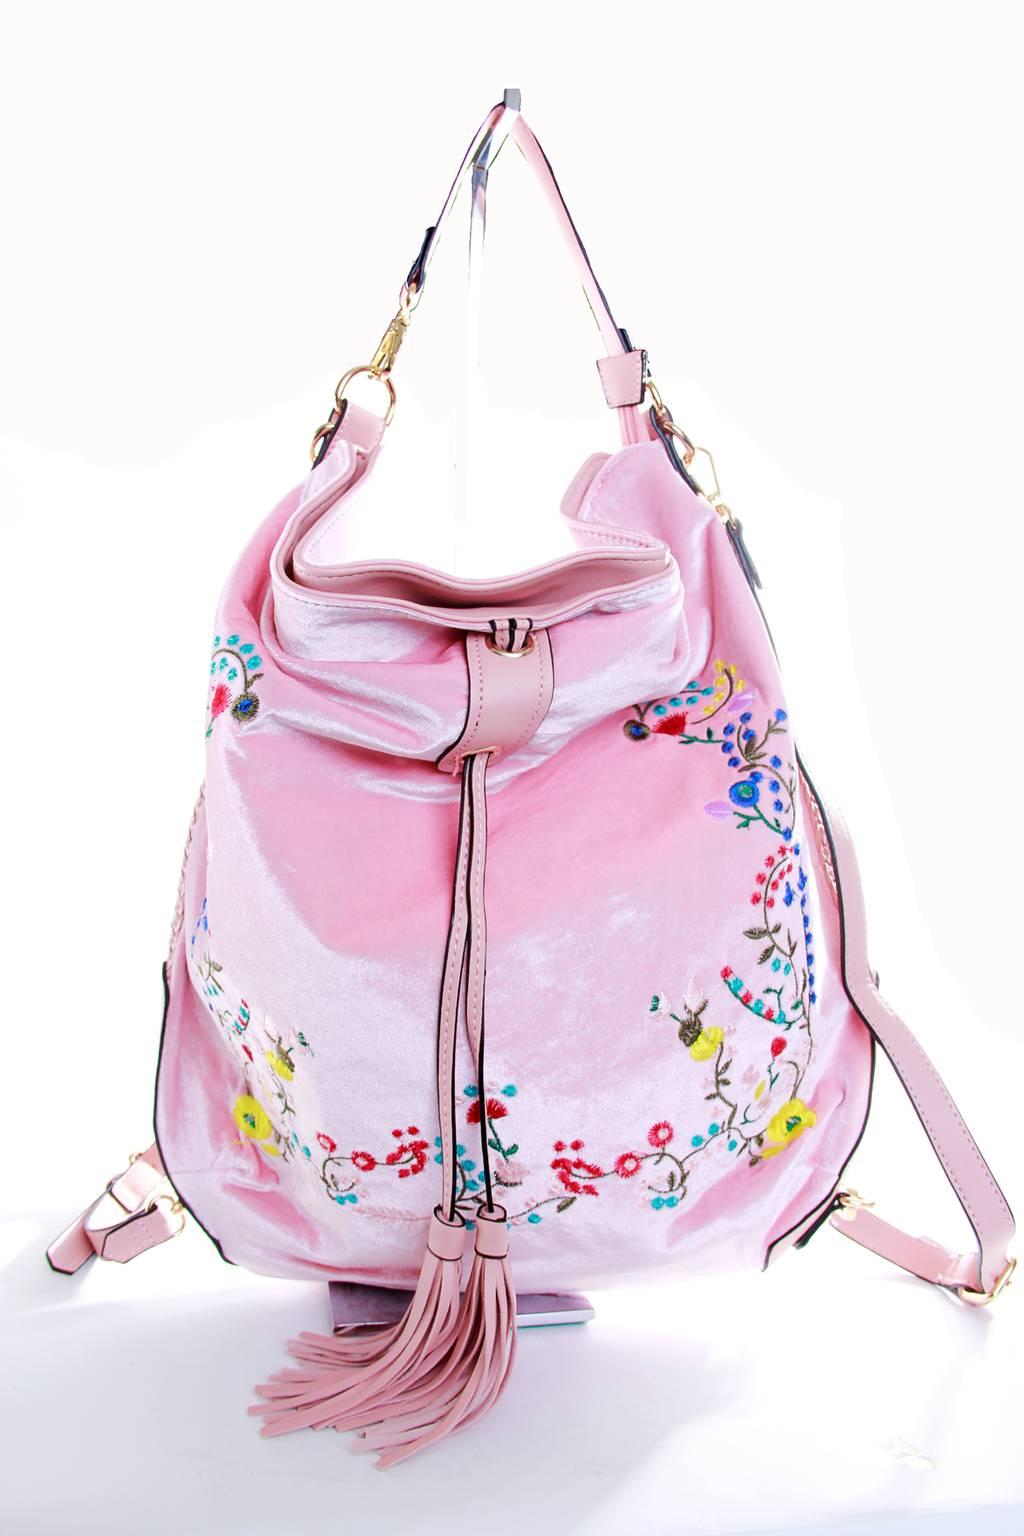 Velvet Floral Embroidered Backpack - shopjessicalouise.com